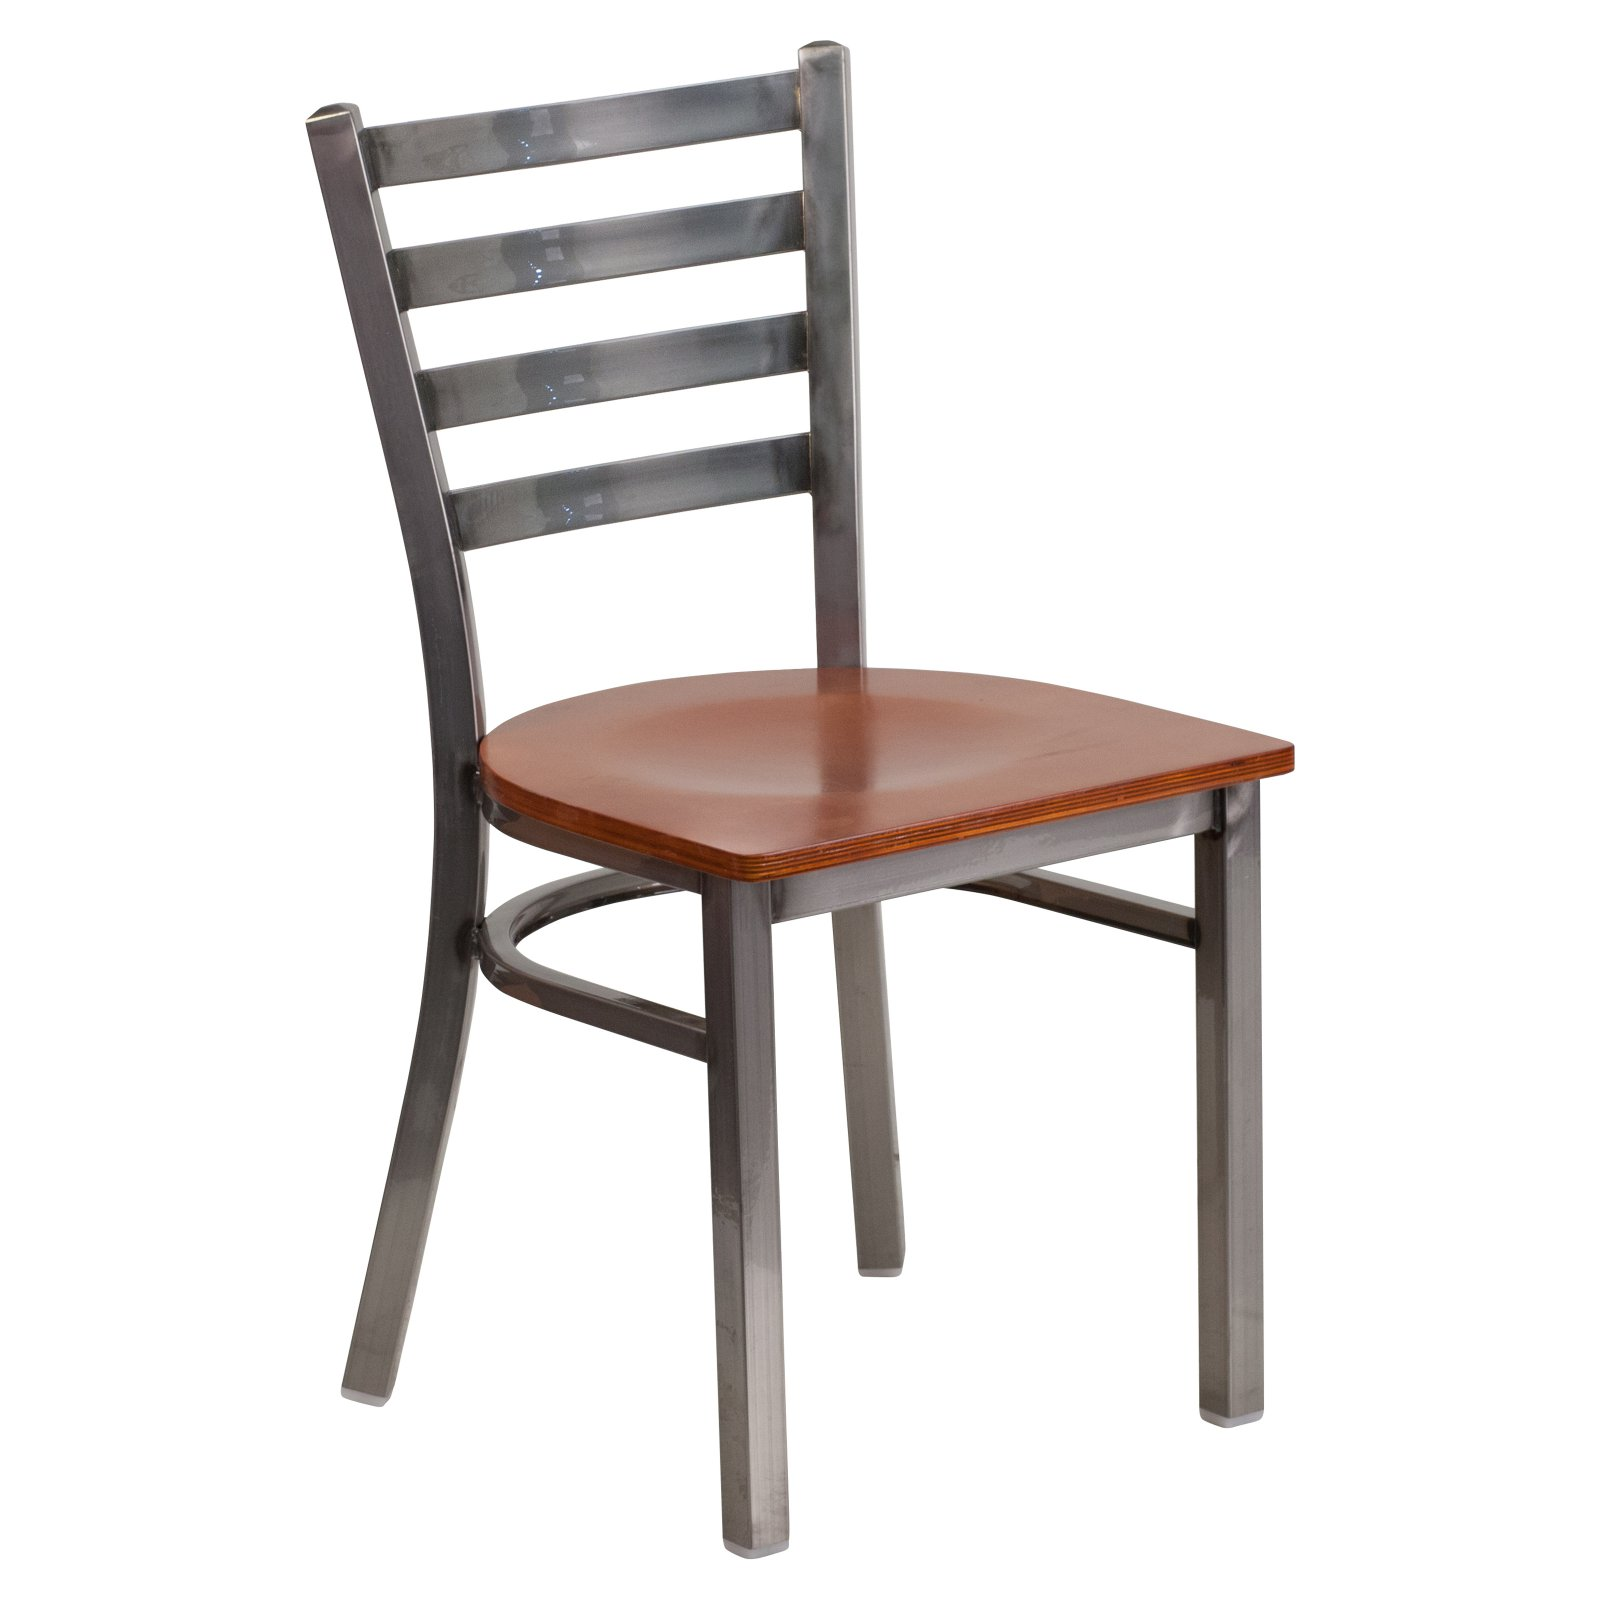 Flash Furniture HERCULES Series Clear Coated Ladder Back Metal Restaurant Chair - Wood Seat Multiple Colors